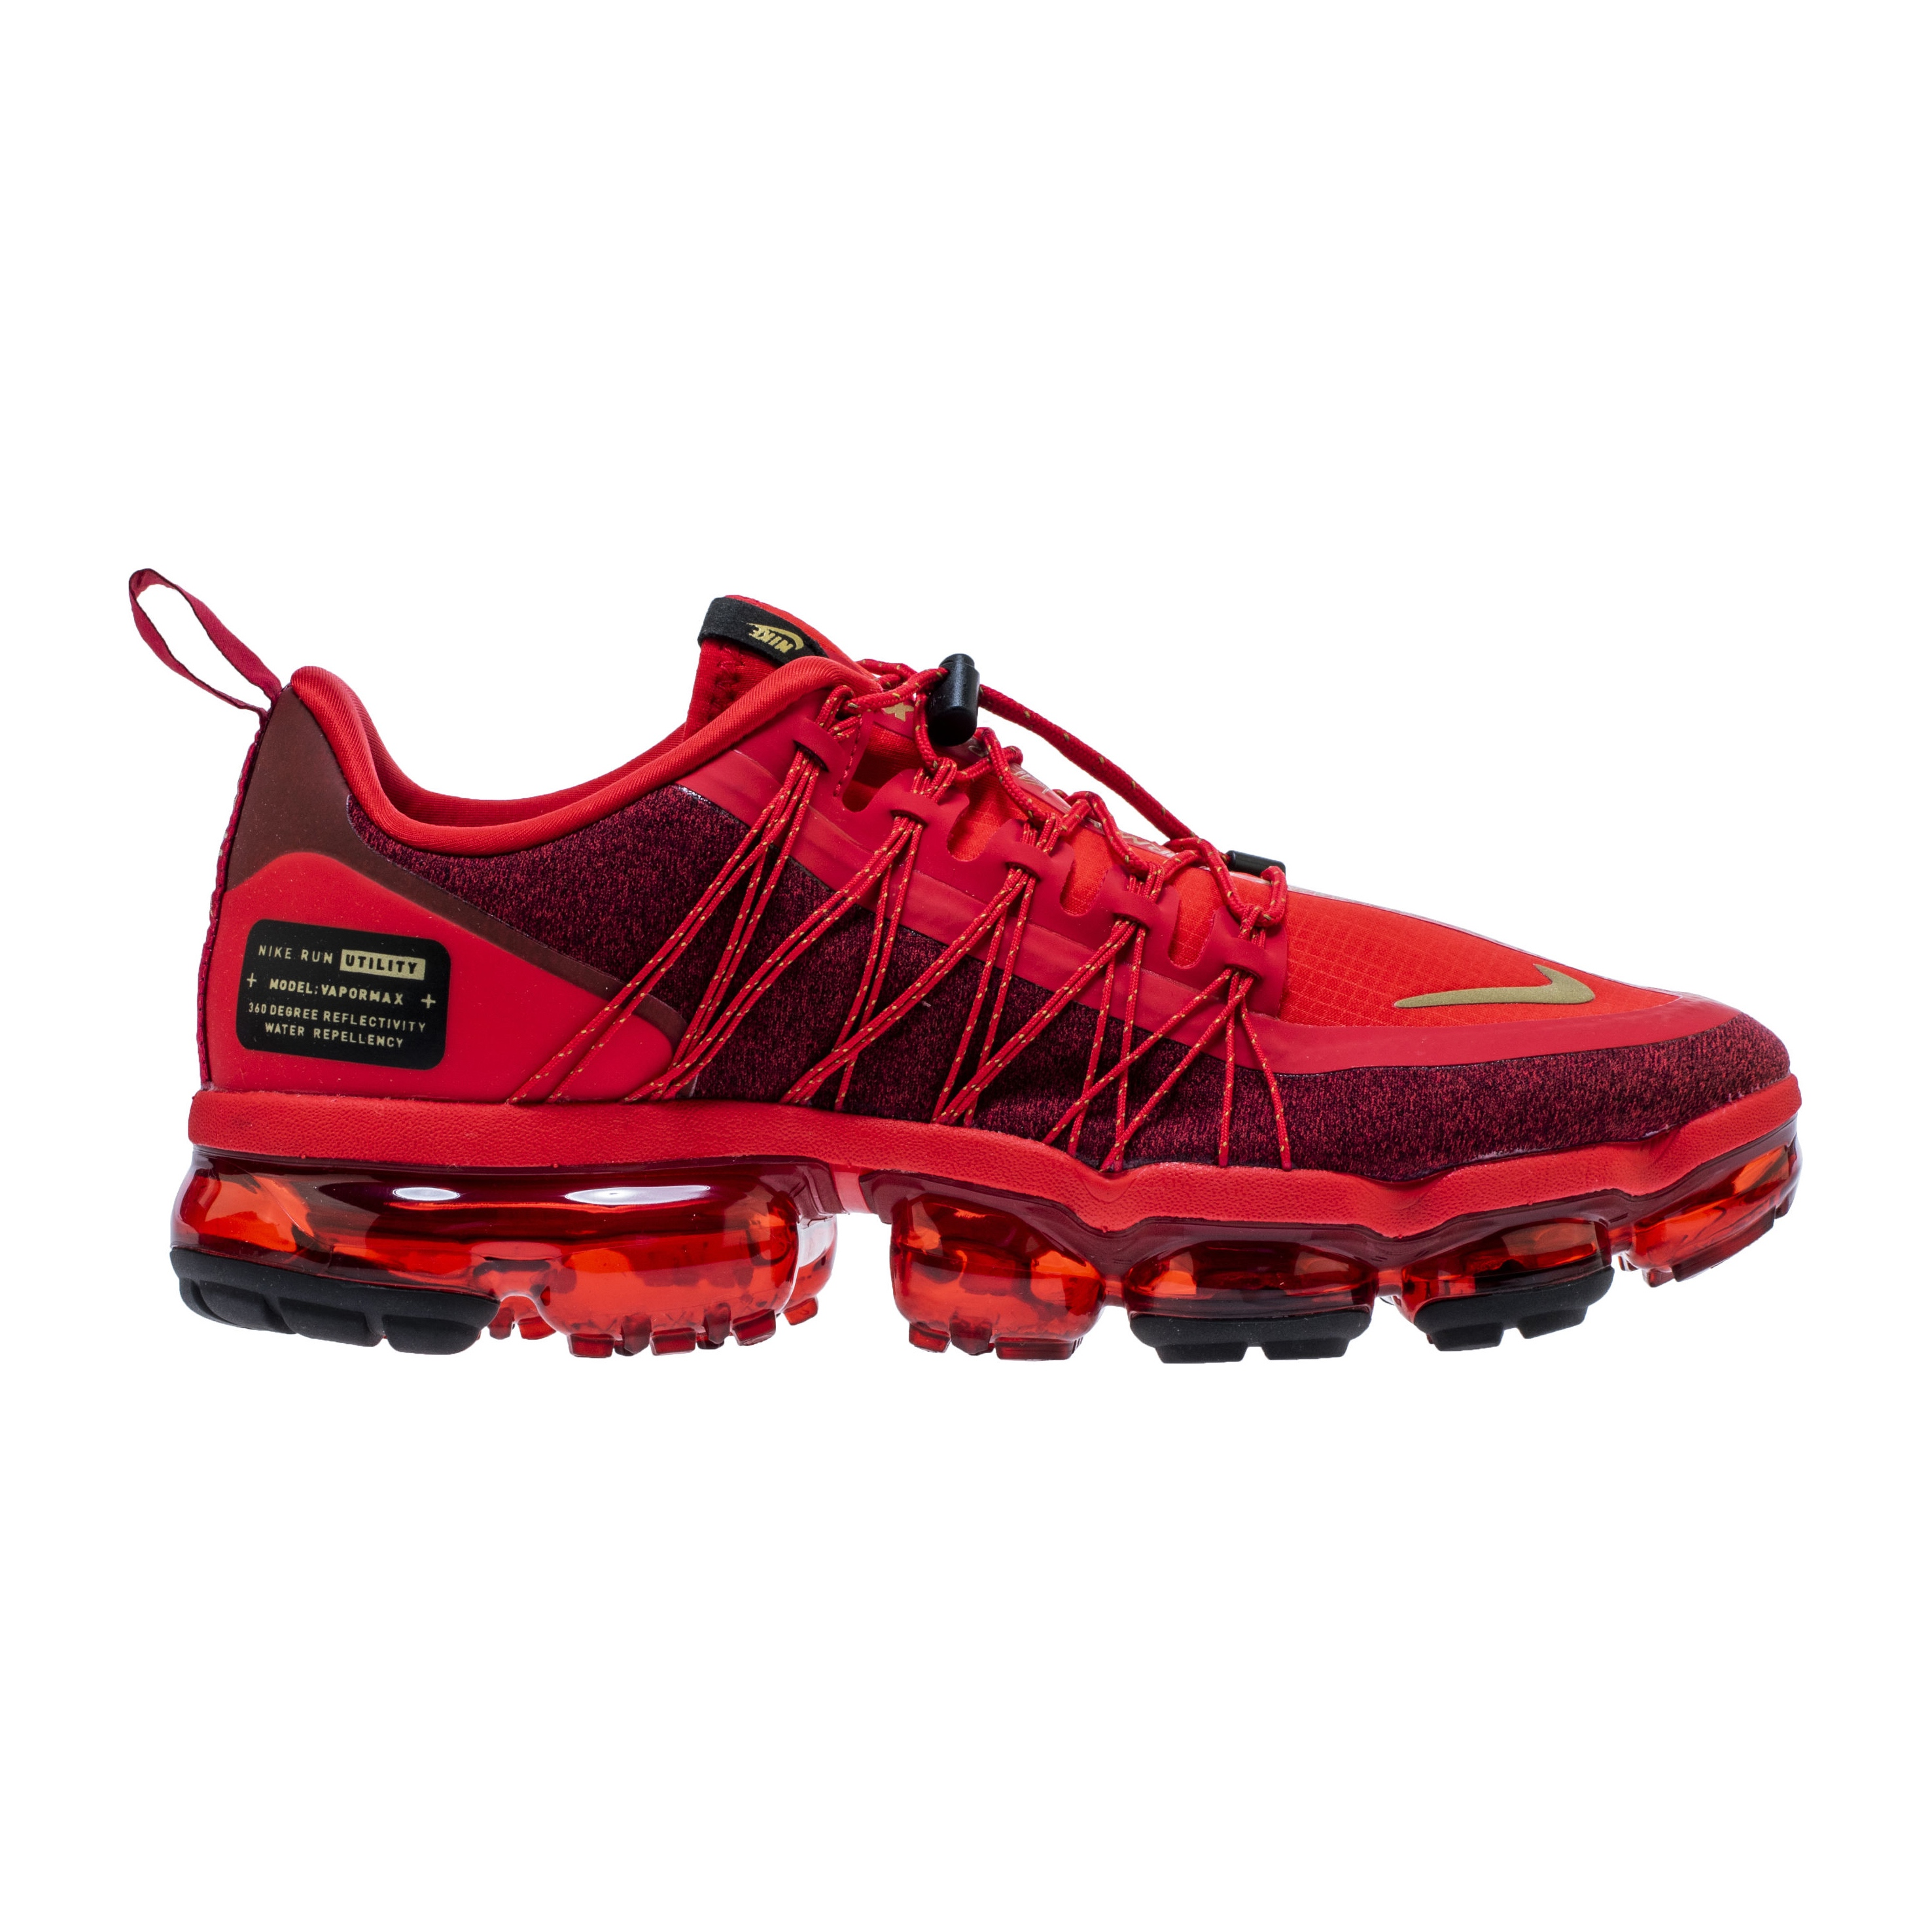 4c73cd5d206c NIKE AIR VAPORMAX RUN UTILITY CANYON RED BLACK 5 - WearTesters